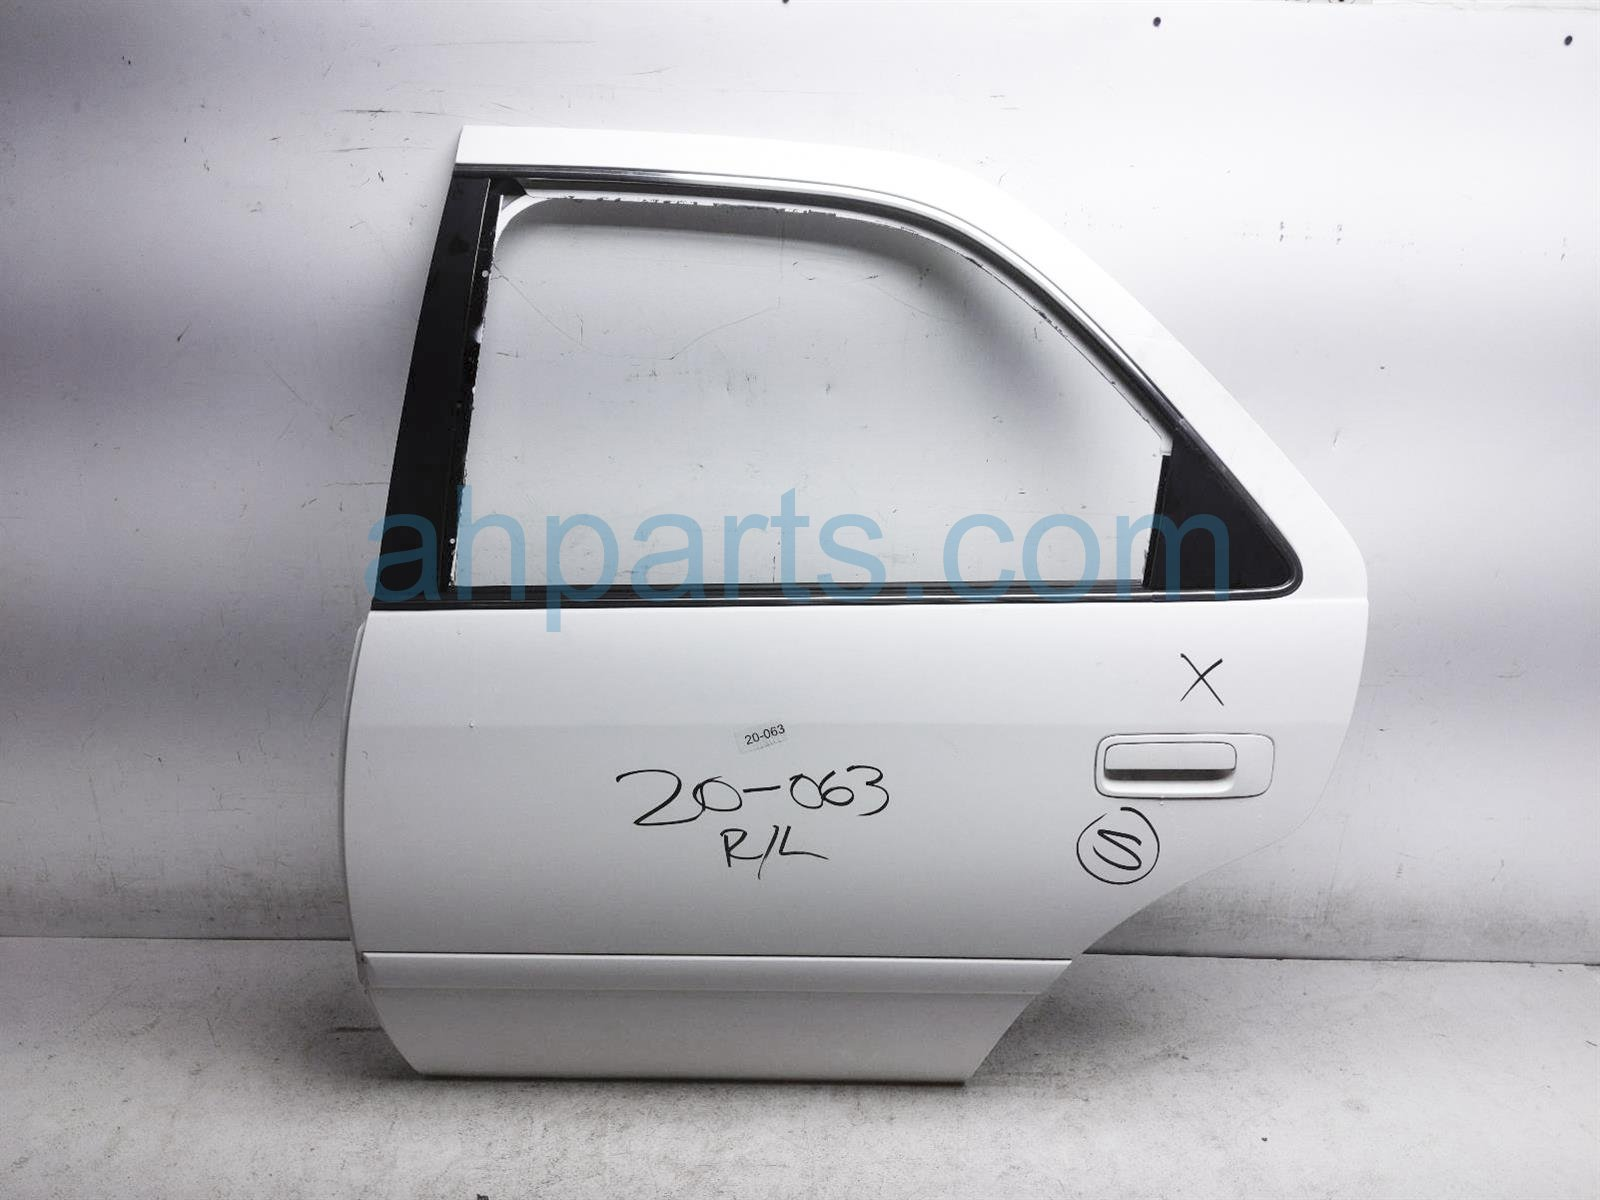 2001 Toyota Camry Rear Driver Door Shell   White 67004 AA020 Replacement